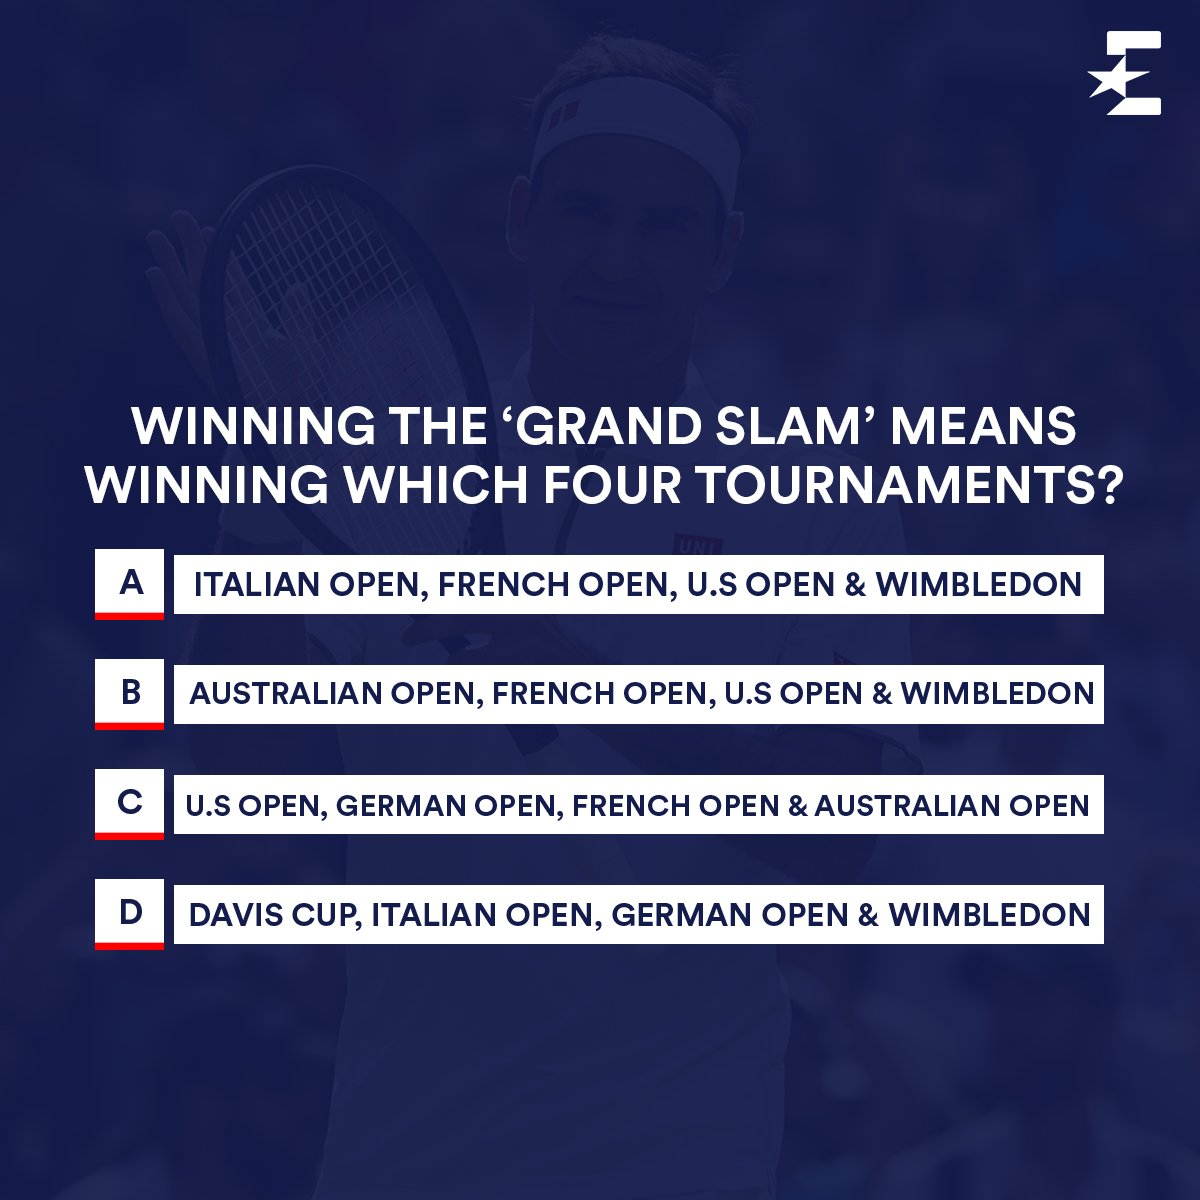 The greatest players aim to set the greatest records. Watch tennis champions battle it out on famous courts, only on Eurosport. . . #EurosportInIndia #Eurosport #Tennis #TennisUnited  #Wimbledon #FrenchOpen #ItalianOpen #USOpen #AustralianOpen #GermanOpen #DavisCup #GrandSlam https://t.co/aHw2muldjk